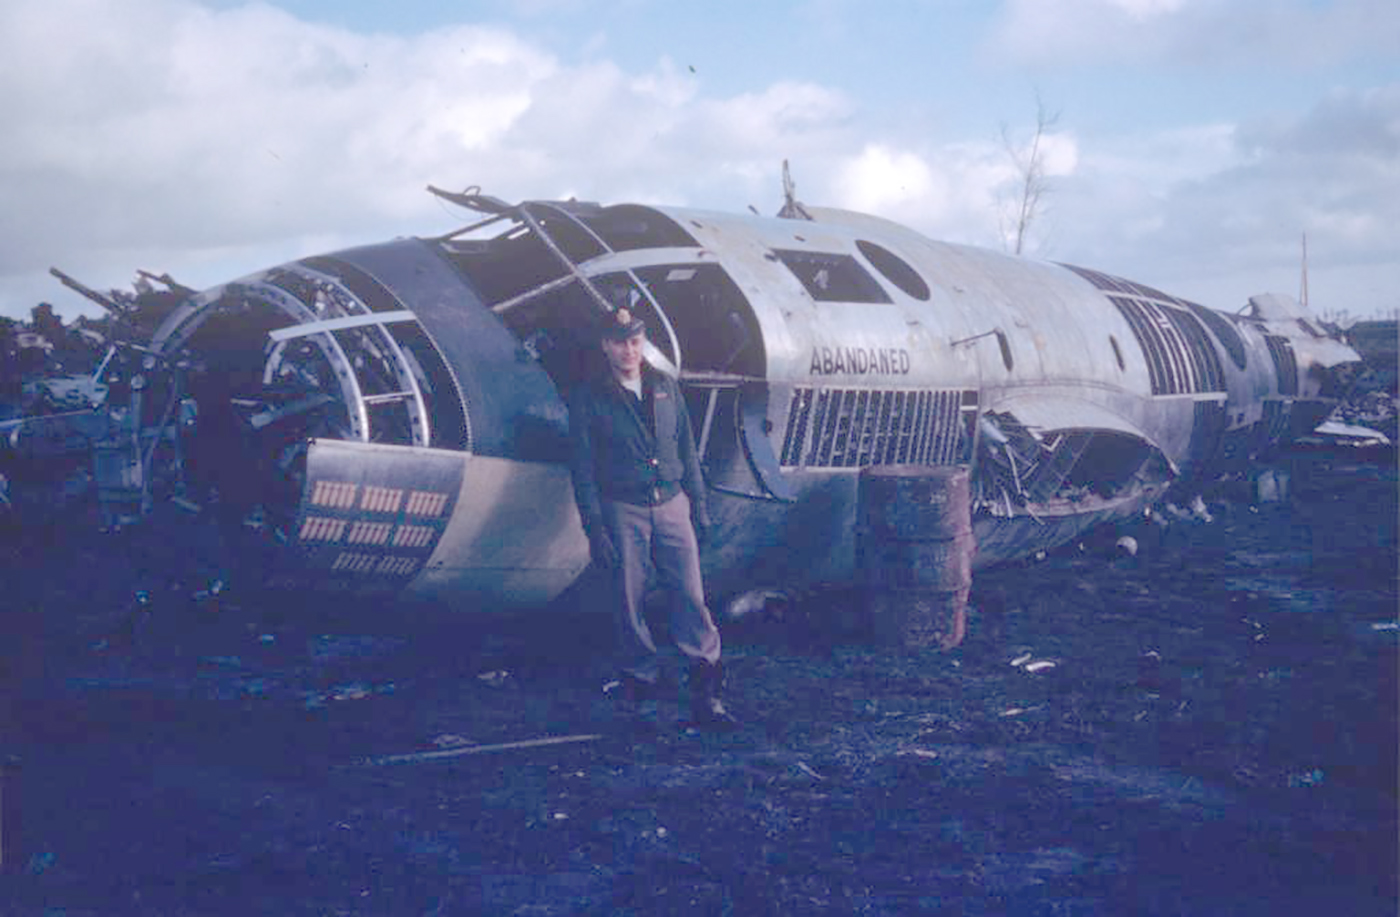 USAAF B 26 Marauder 344BG with Lt Al Eberhardt and the wreckage of his B 26 now marked abandaned 01